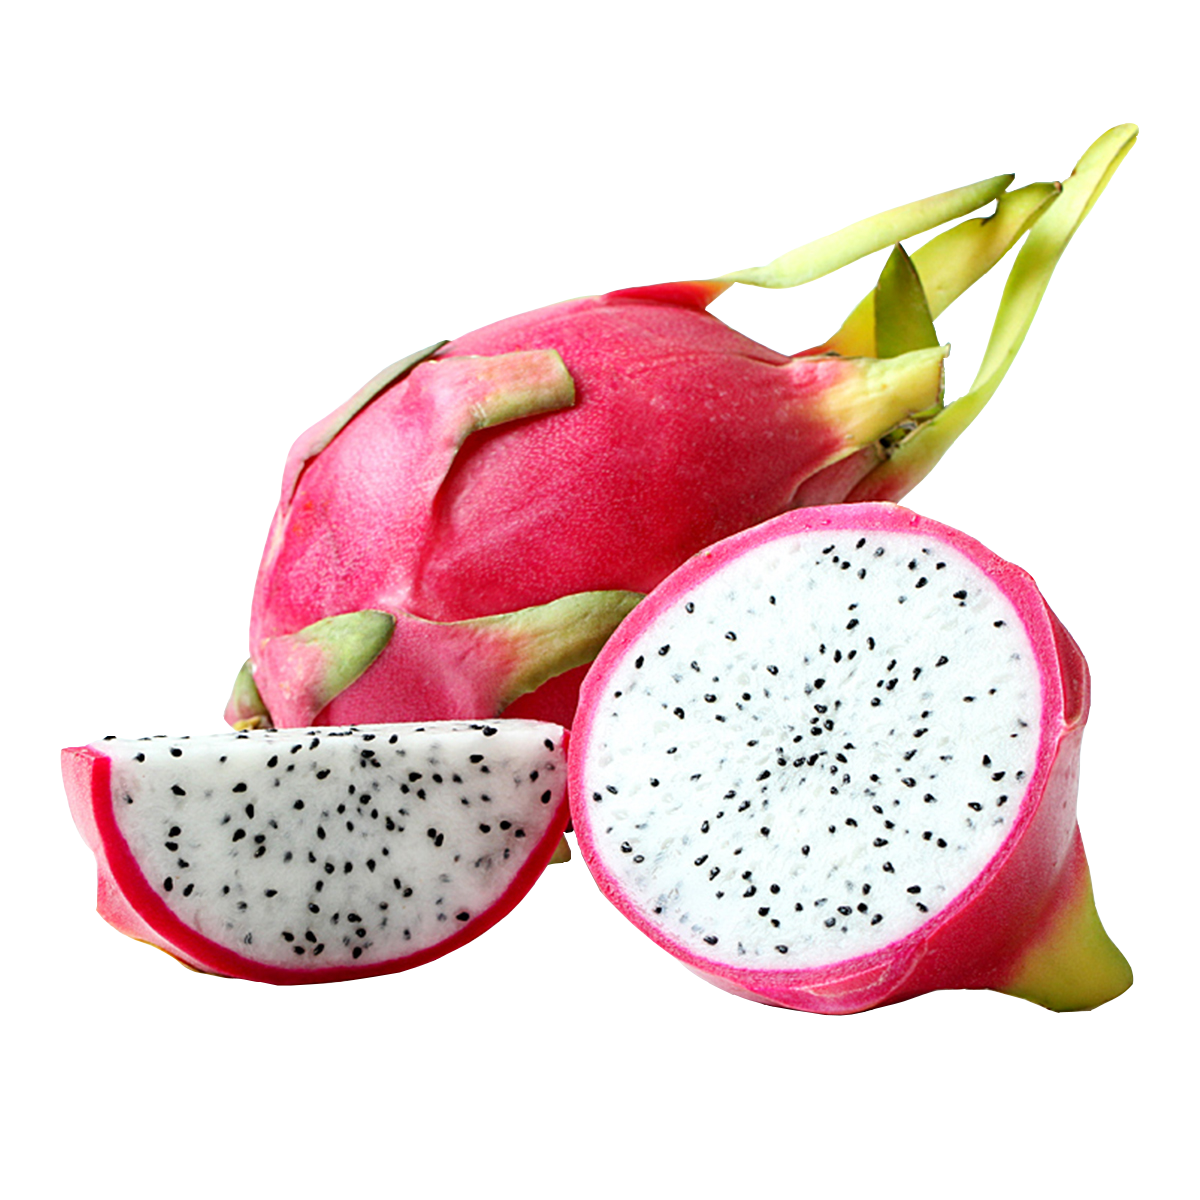 produits - fruits - fruit-du-dragon-pitaya